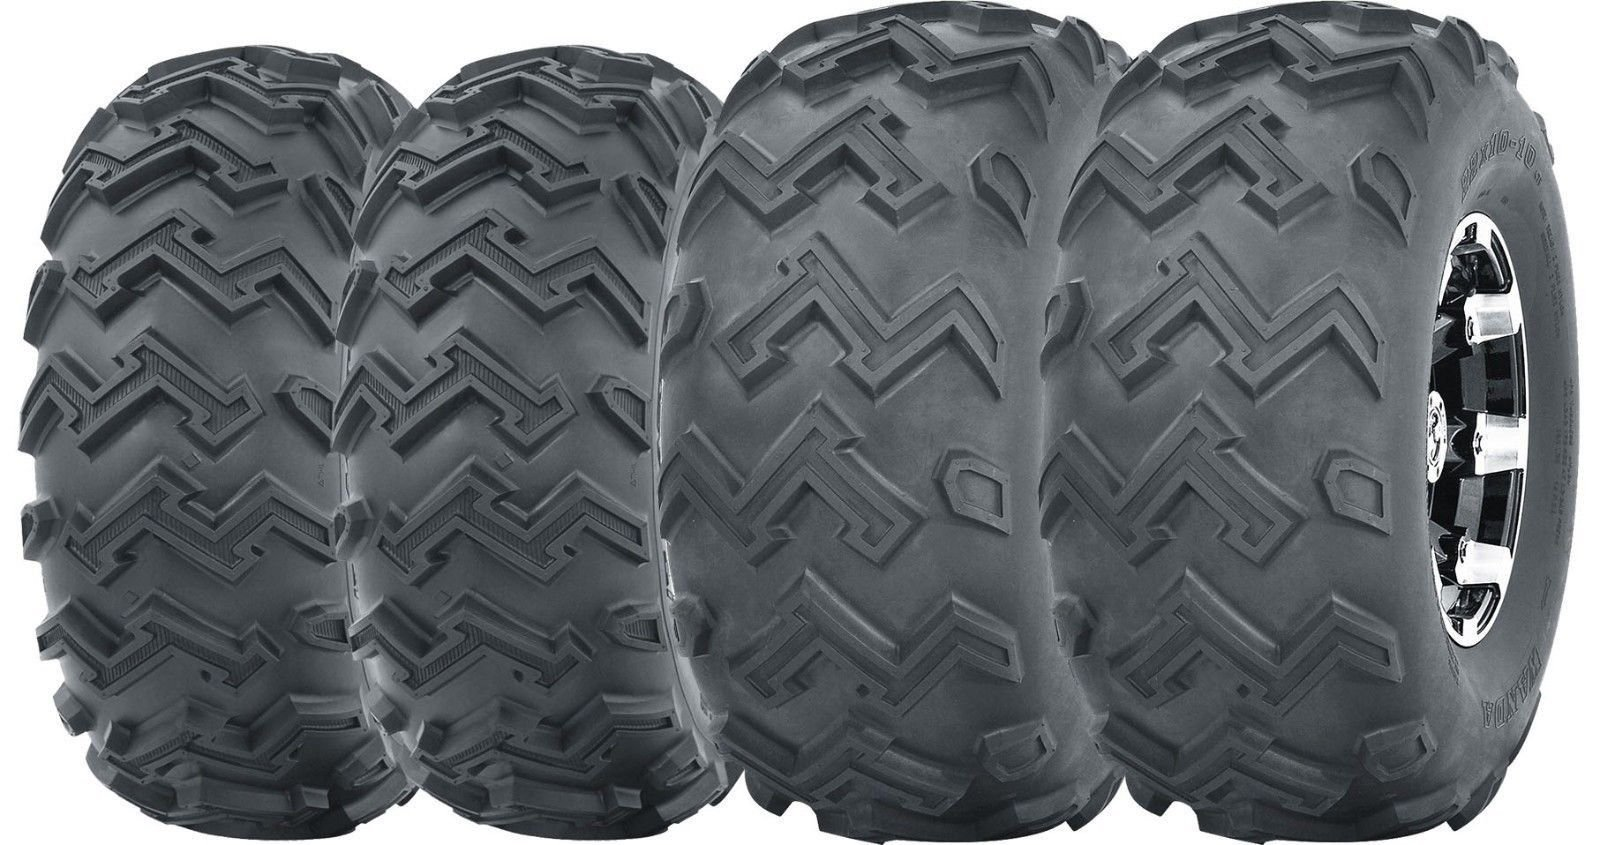 Set of 4 WANDA ATV UTV Tires 22x8-10 Front & 22x11-10 Rear 4PR